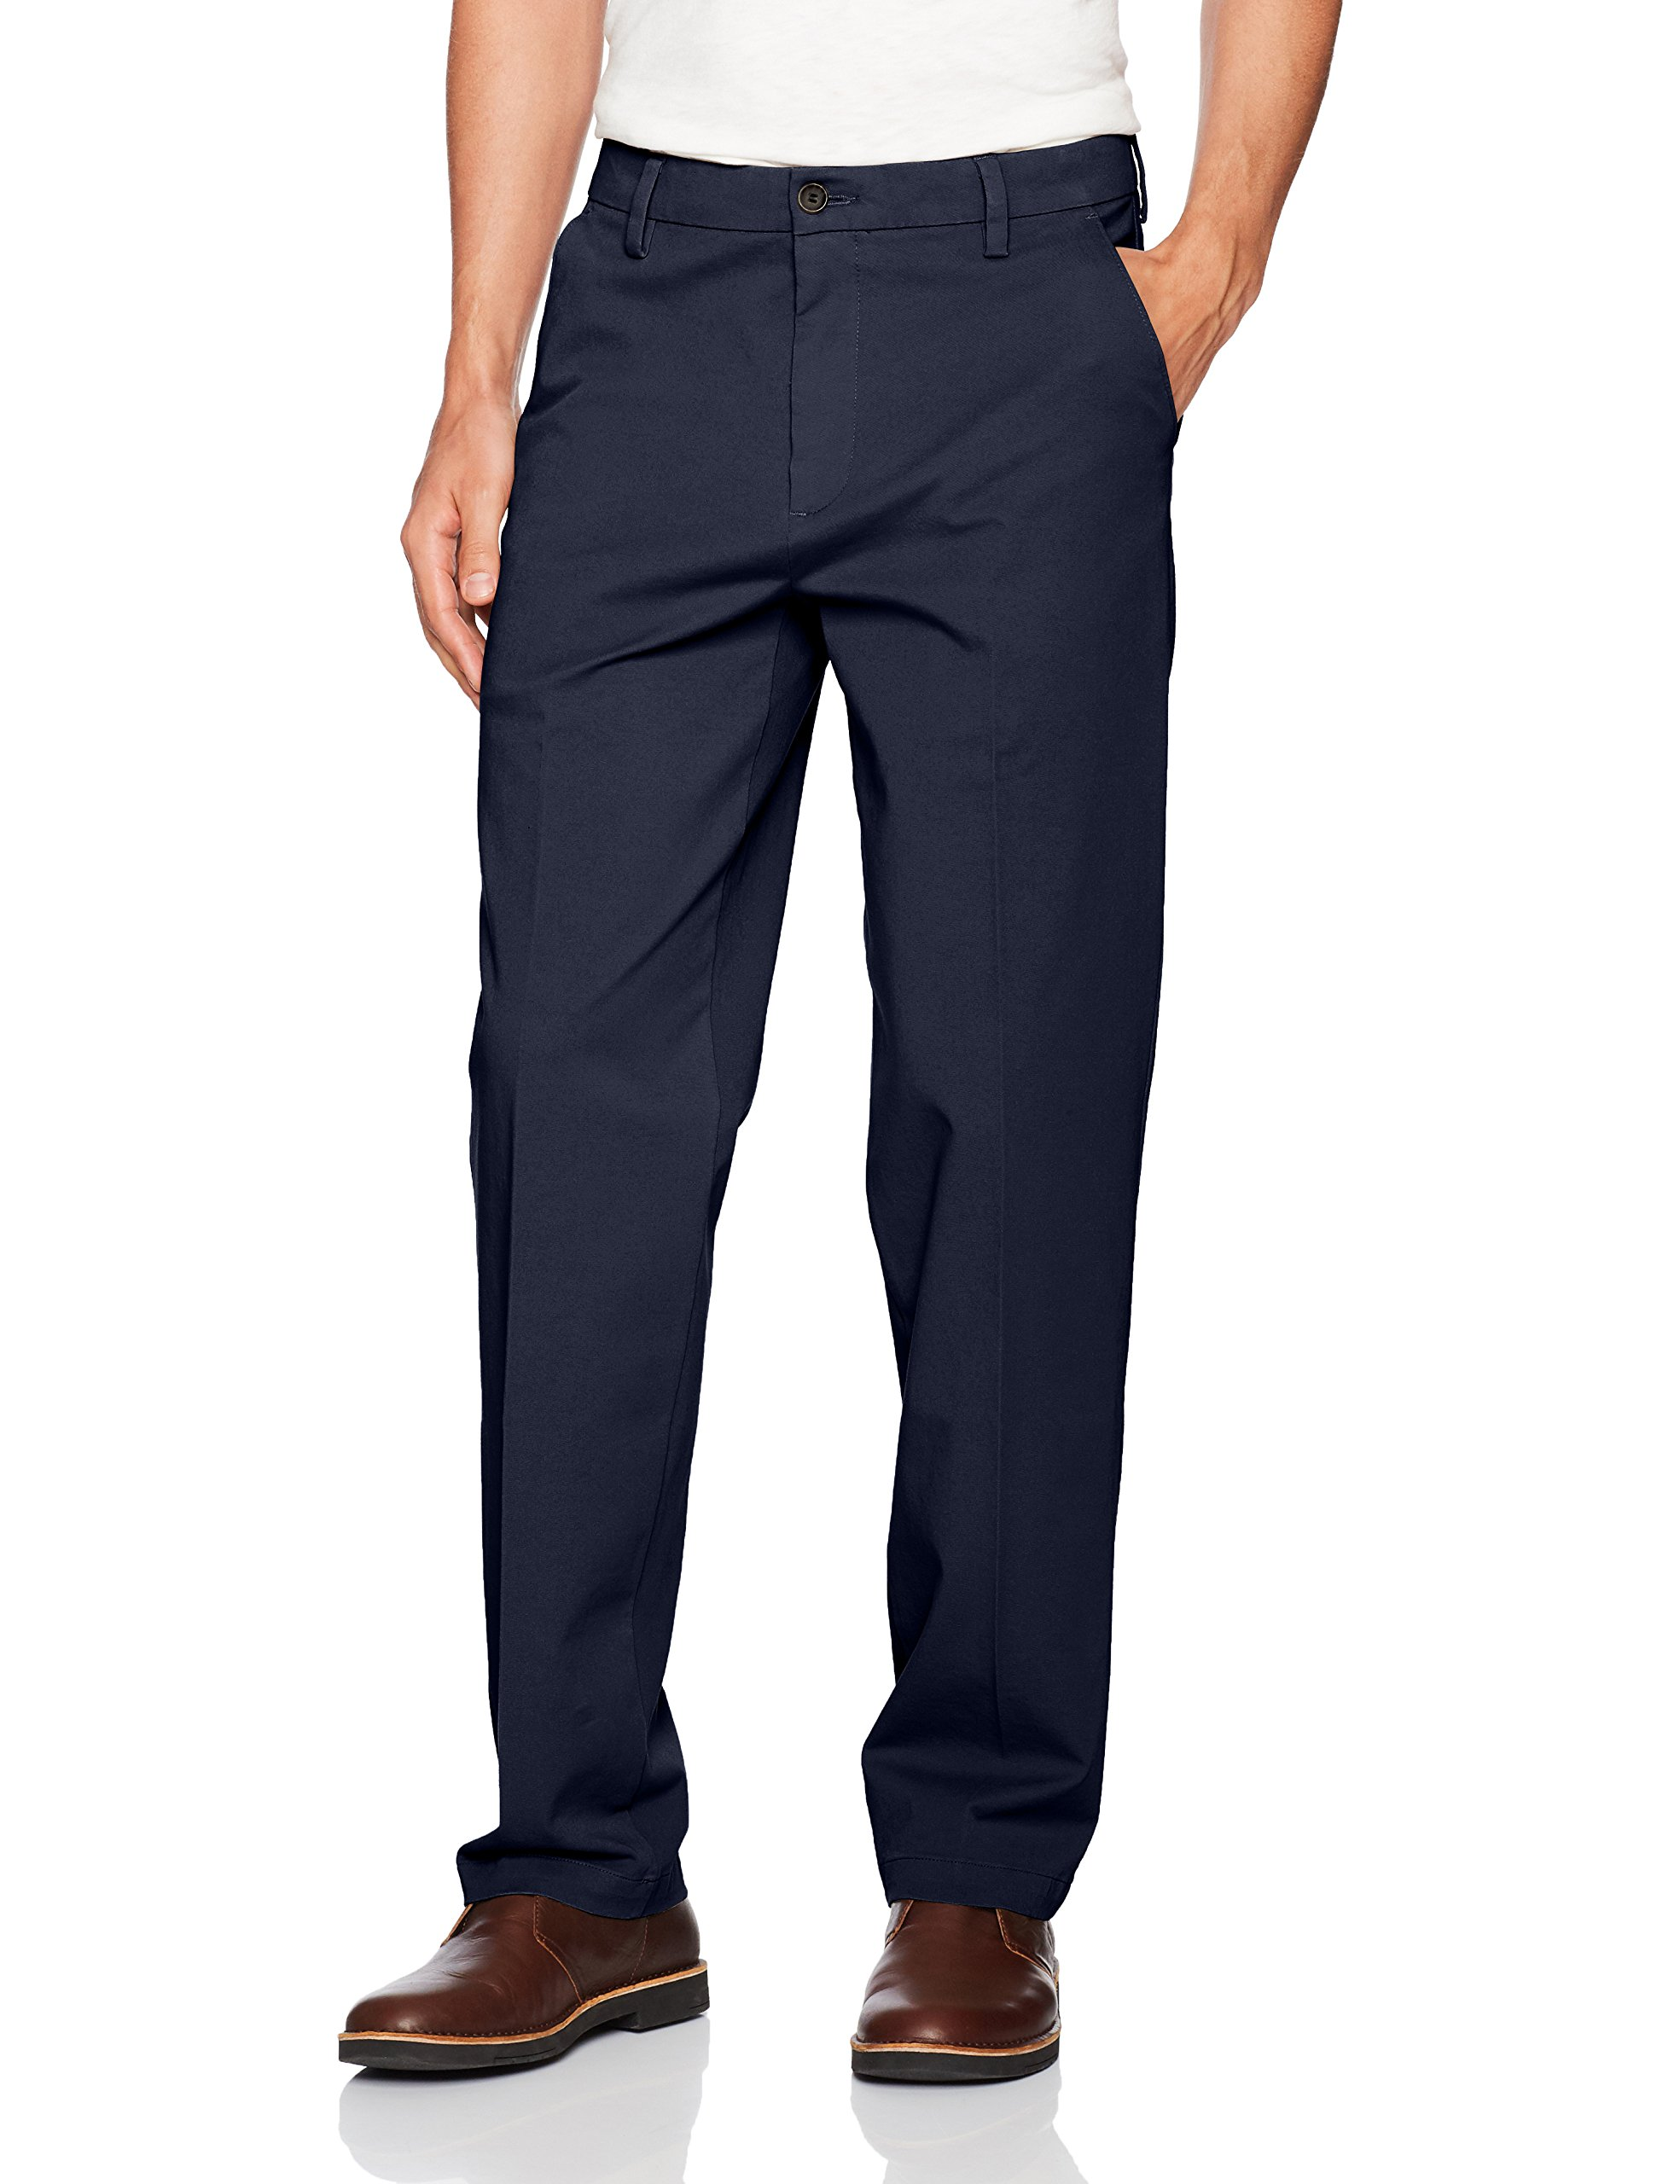 Dockers Men's Classic Fit Workday Khaki Smart 360 Flex Pants D3, Pembroke (Stretch), 34W x 36L